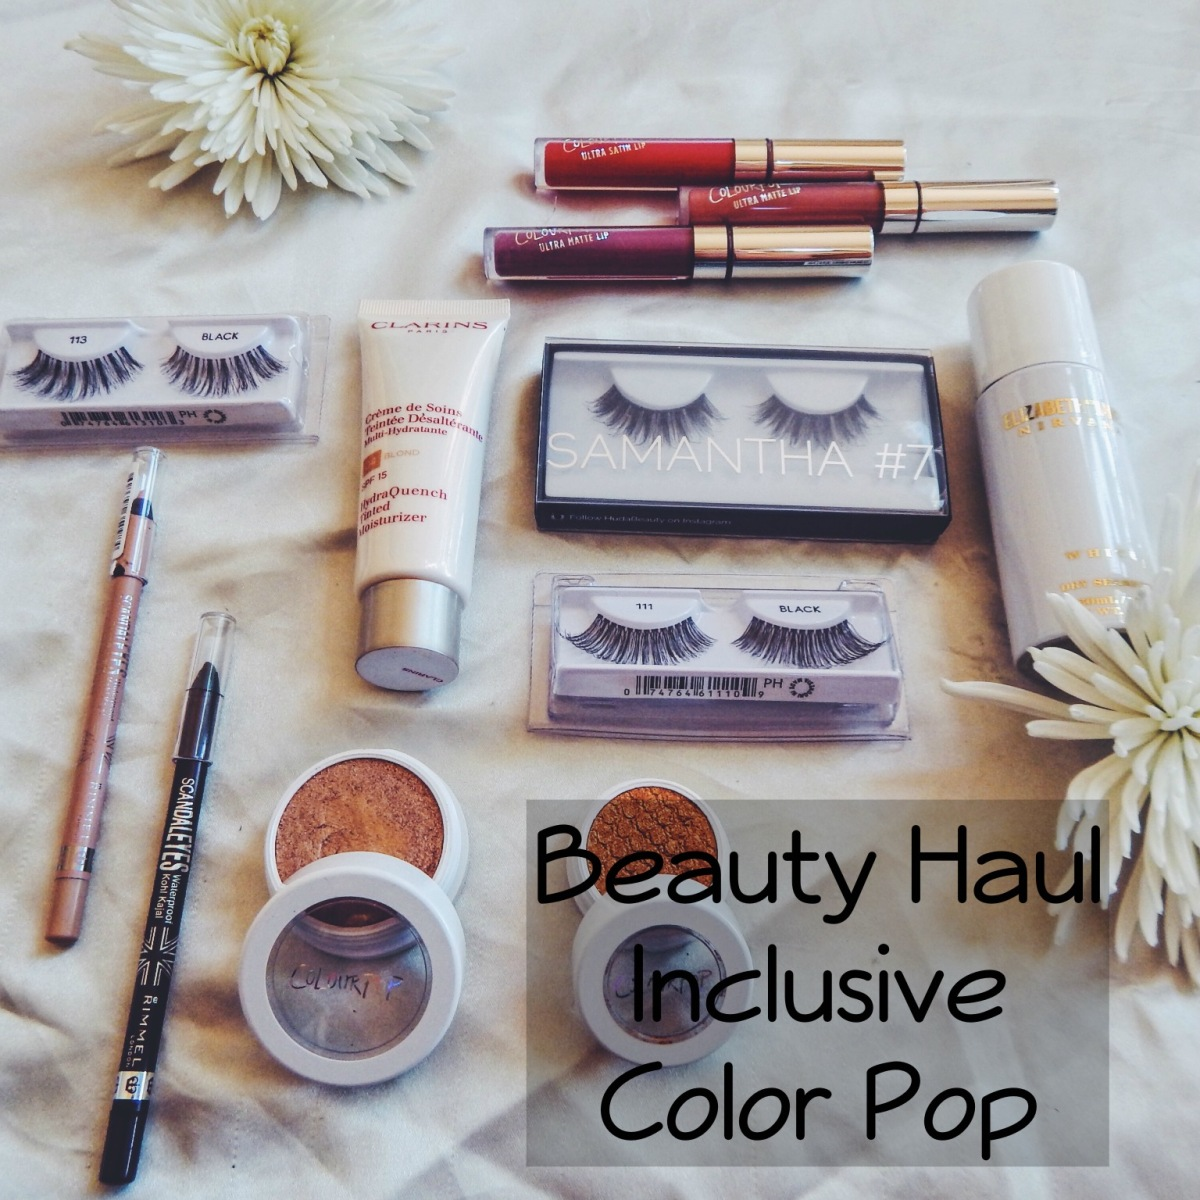 Beauty Haul incl. Color Pop